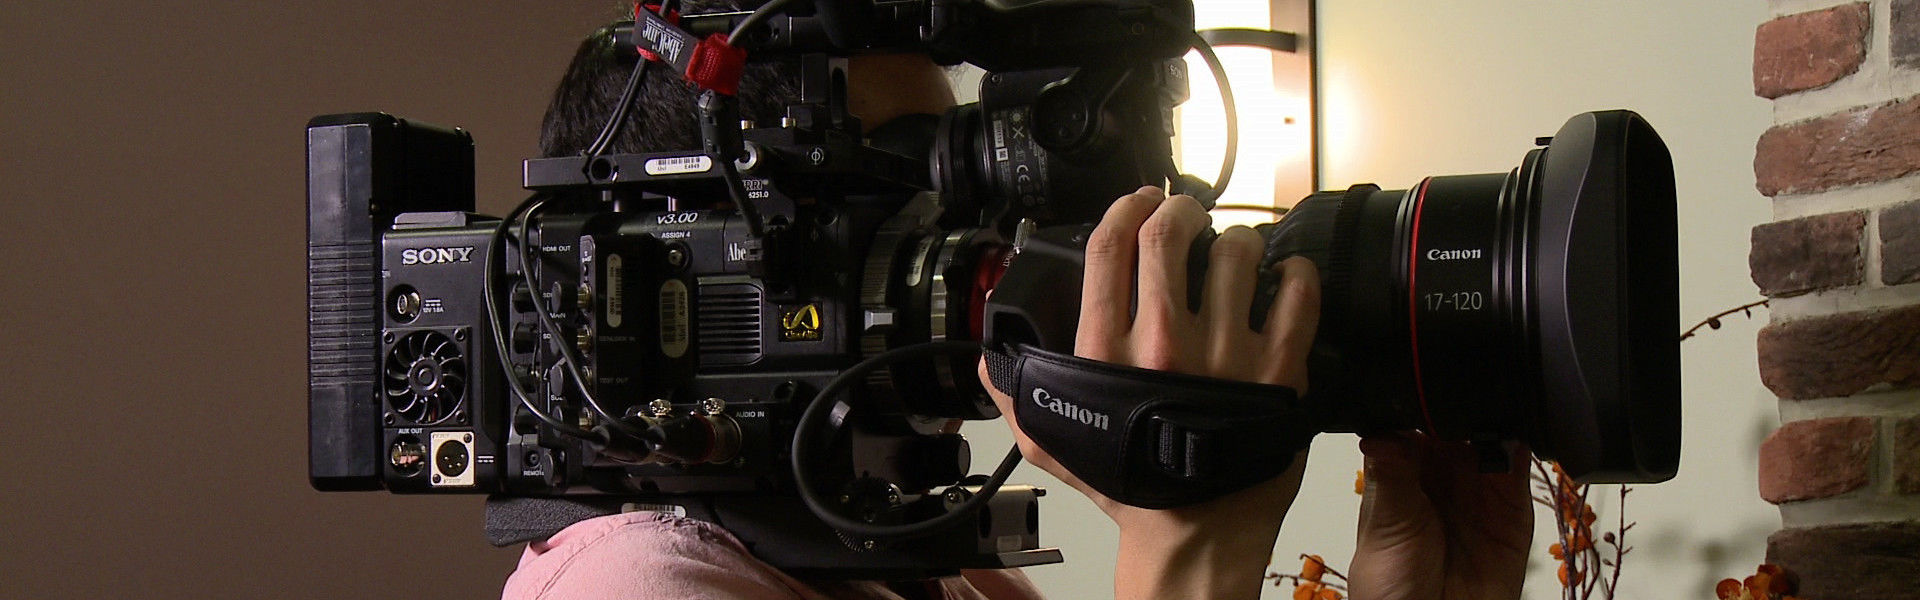 Header image for article Canon Announces New CN7x17 KAS S 17-120 Cine-Servo Zoom